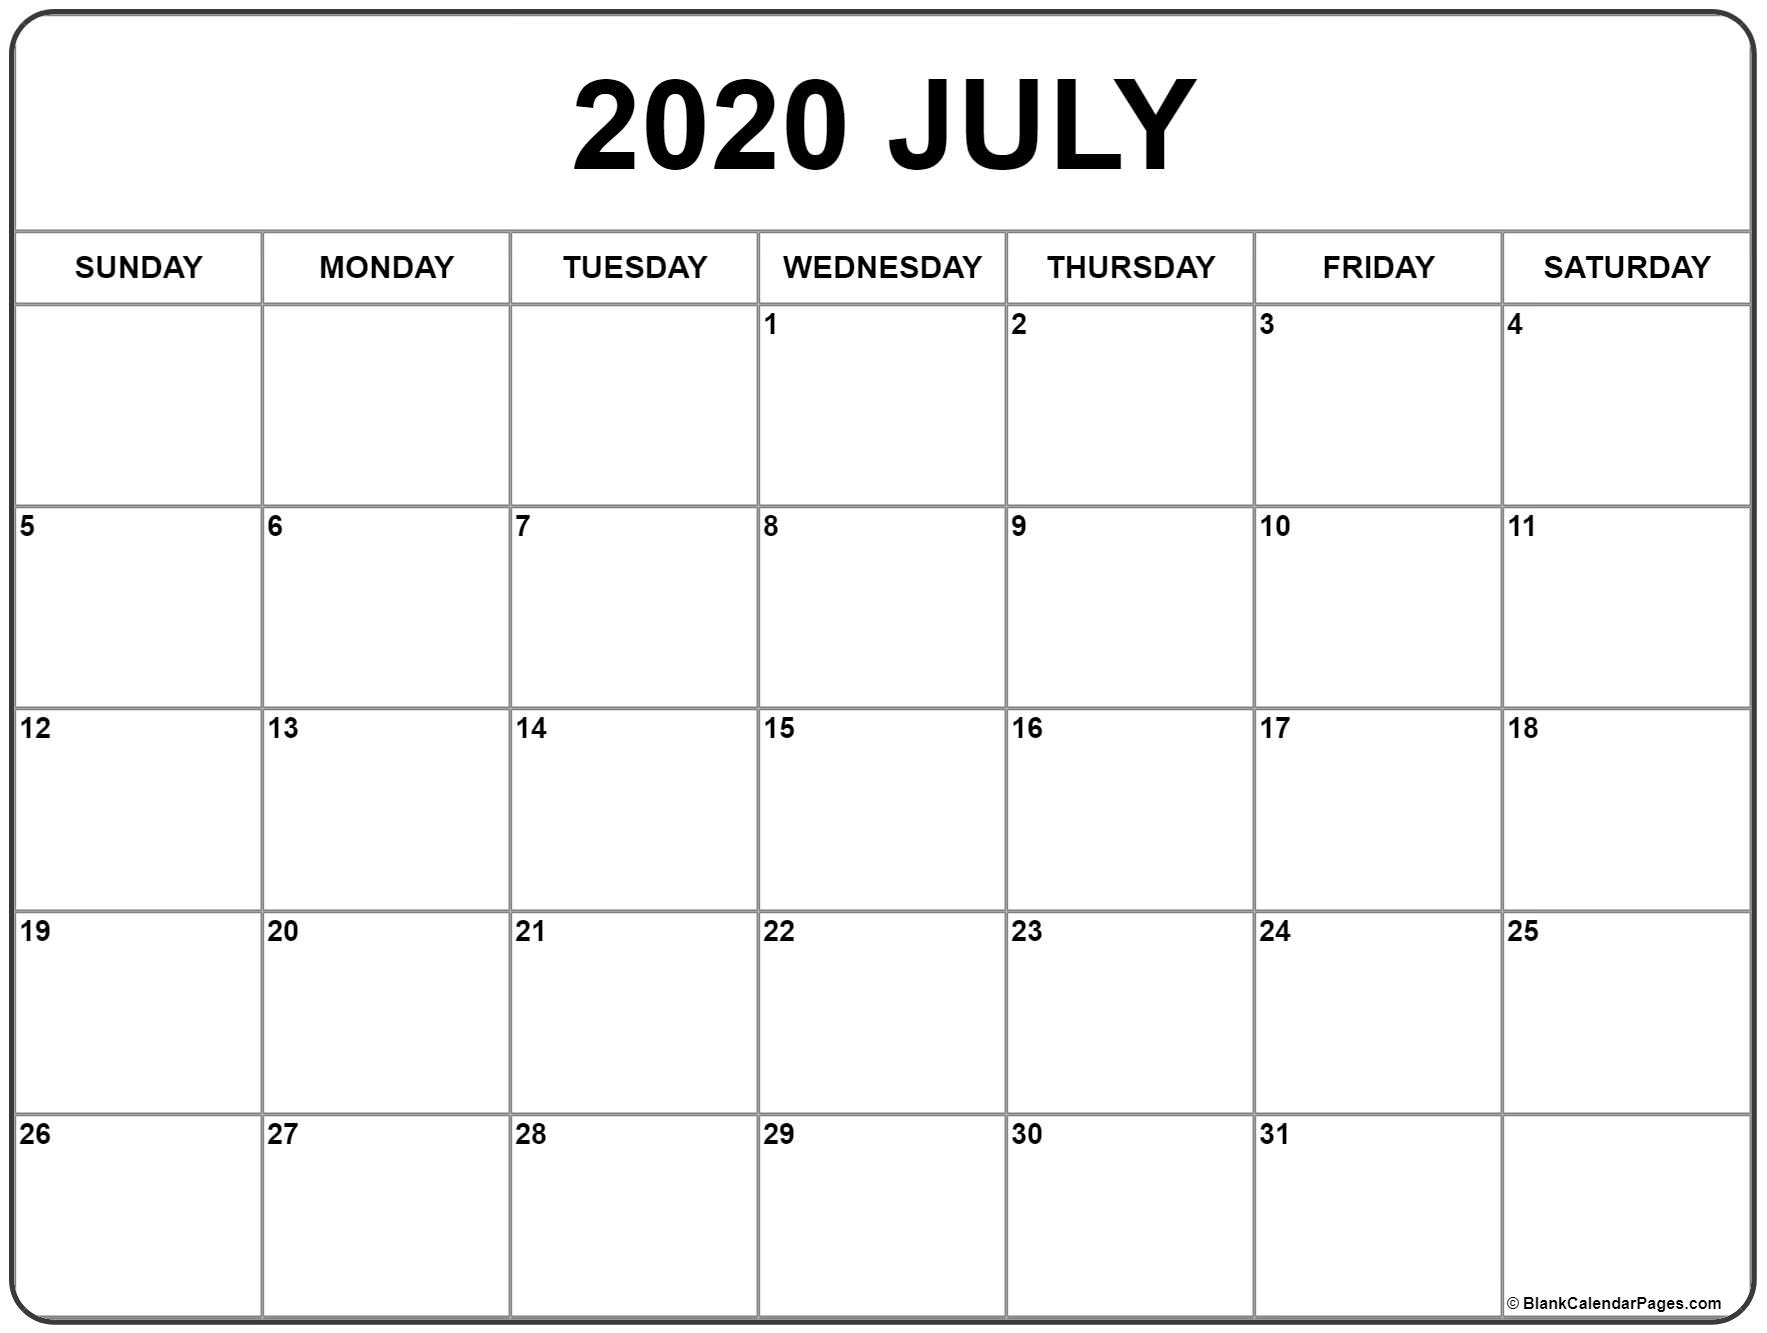 July 2020 Calendar | Free Printable Monthly Calendars intended for Printable 2020 Monthly Calendars Starting With Monday